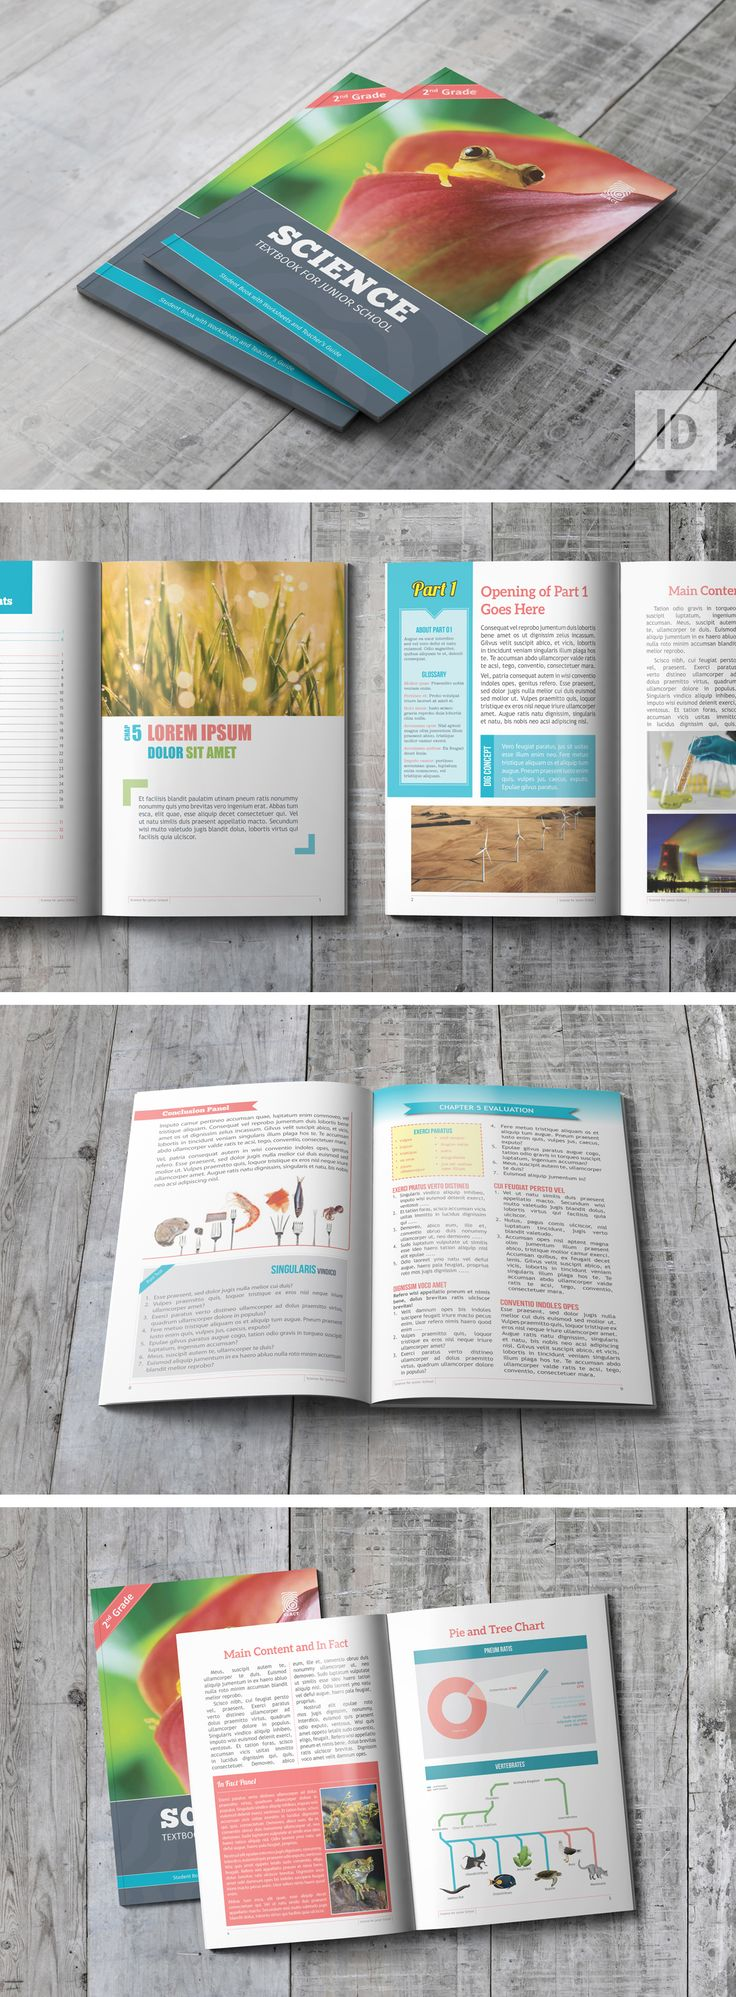 Textbook Template by fisihsani. Use our link below to buy. It won't cost you extra, and we'll earn some money --> https://crmrkt.com/12rk1